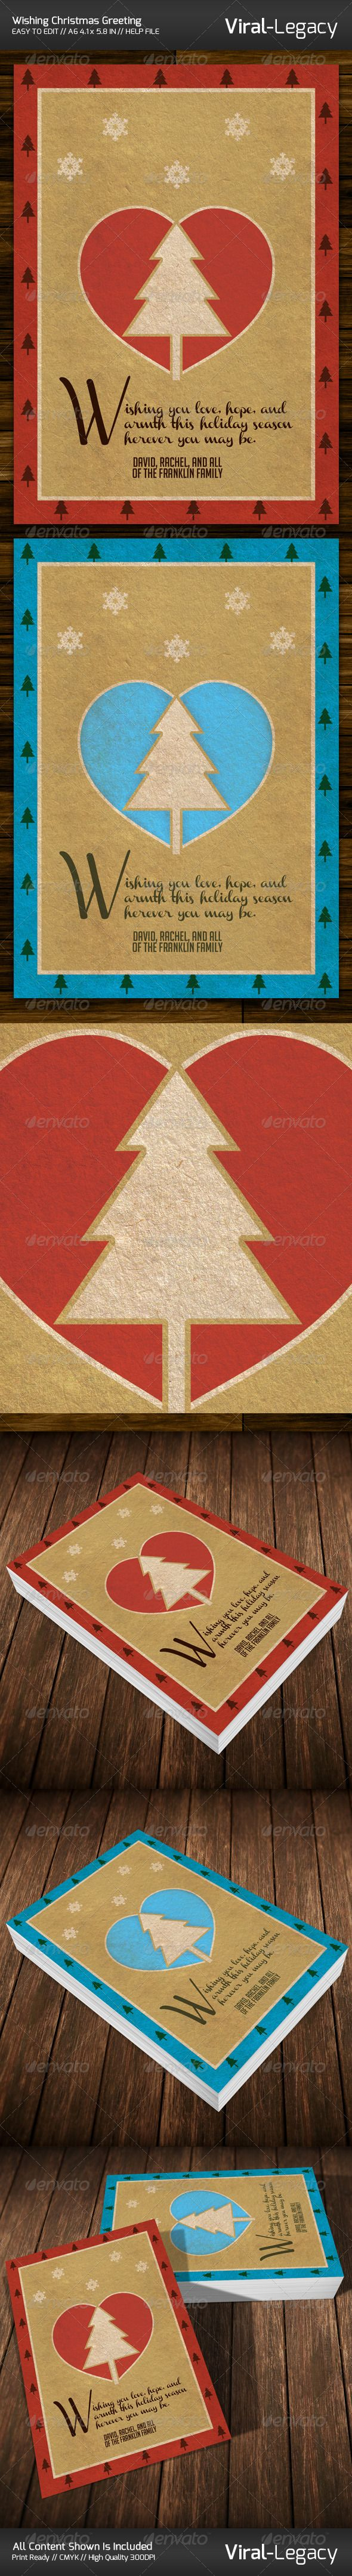 Wishing christmas greeting card graphicriver print templates wishing christmas greeting card graphicriver print templates pinterest christmas greetings and christmas greeting cards kristyandbryce Image collections